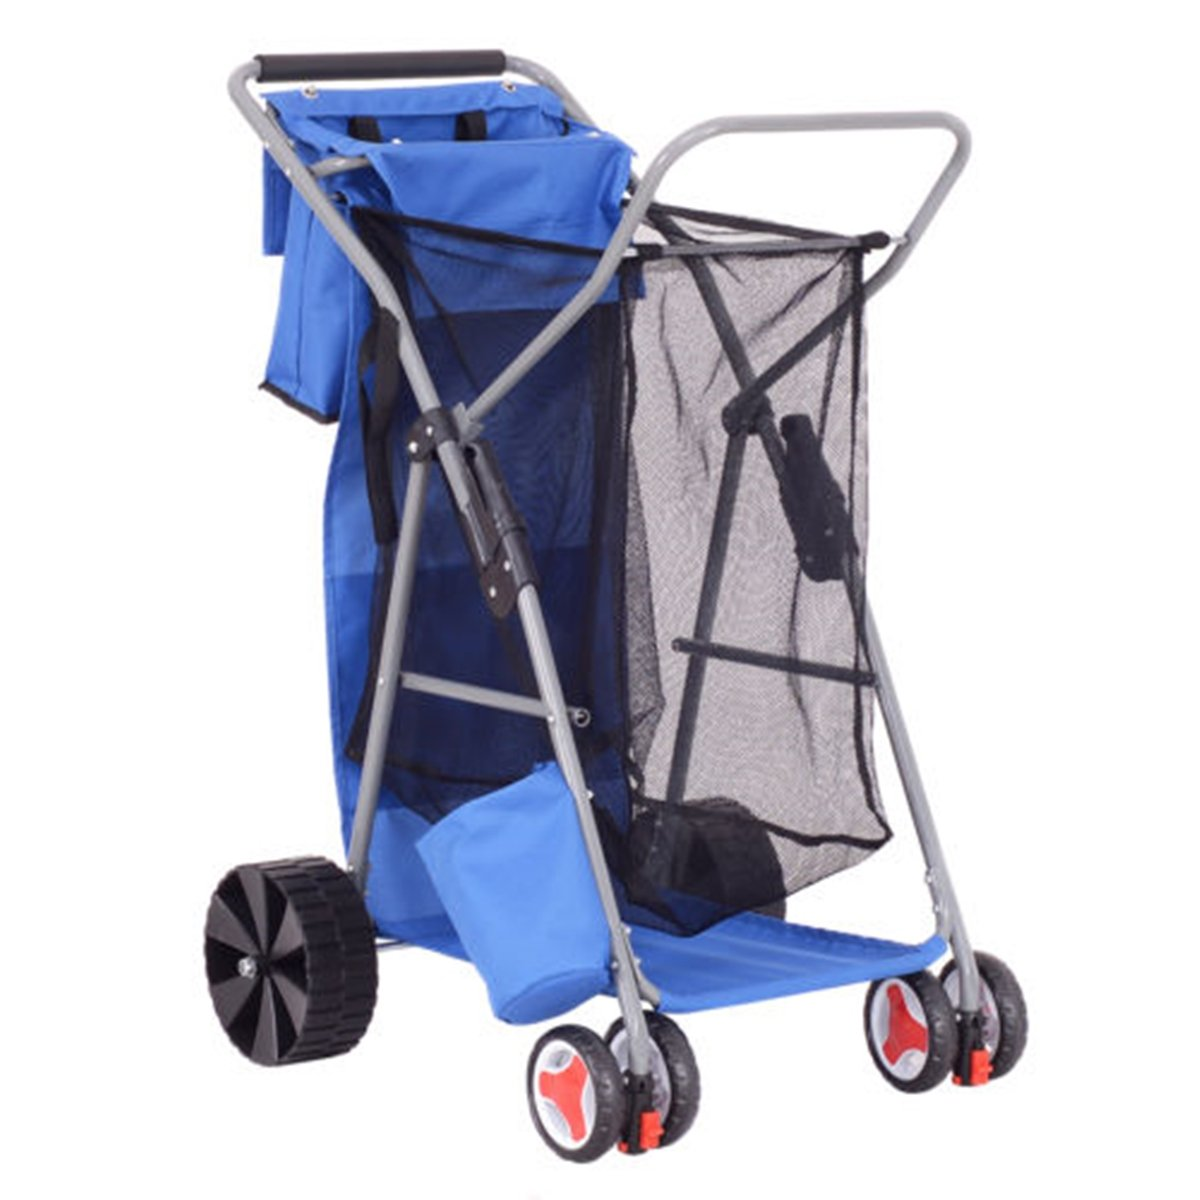 Heaven Tvcz Tote Cart Folding Transport Wheeler Blue Trolley Deluxe Foldable Beach Wonder Storage for carrying and storing the beach accessories.